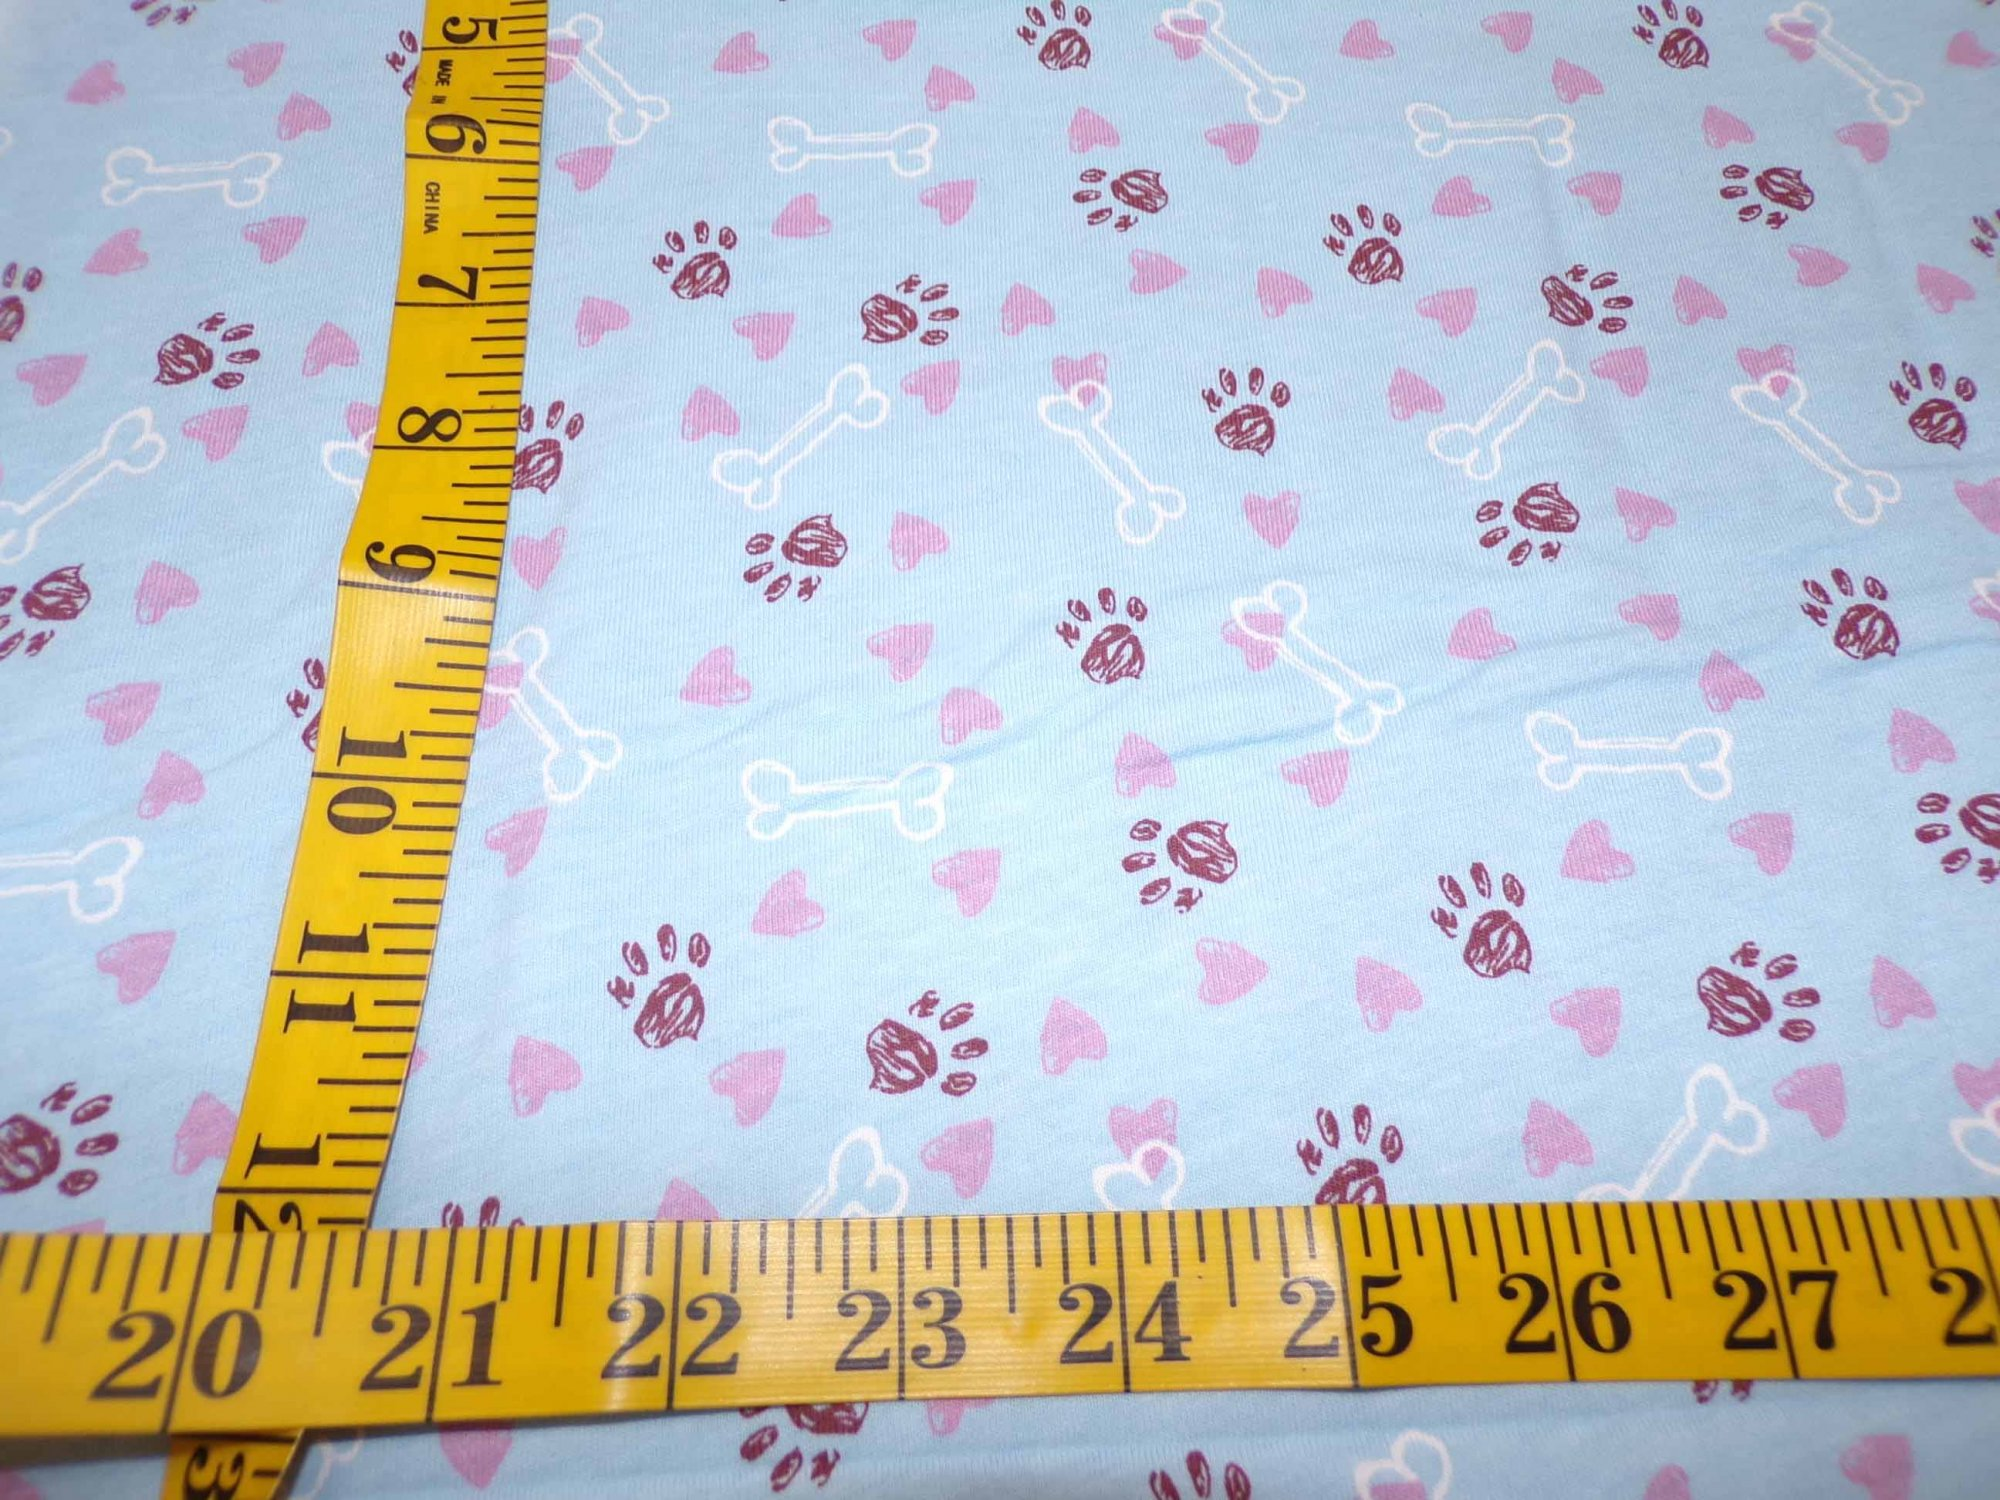 Cotton Jersey - Light Blue with Paw Prints, Bones, & Hearts